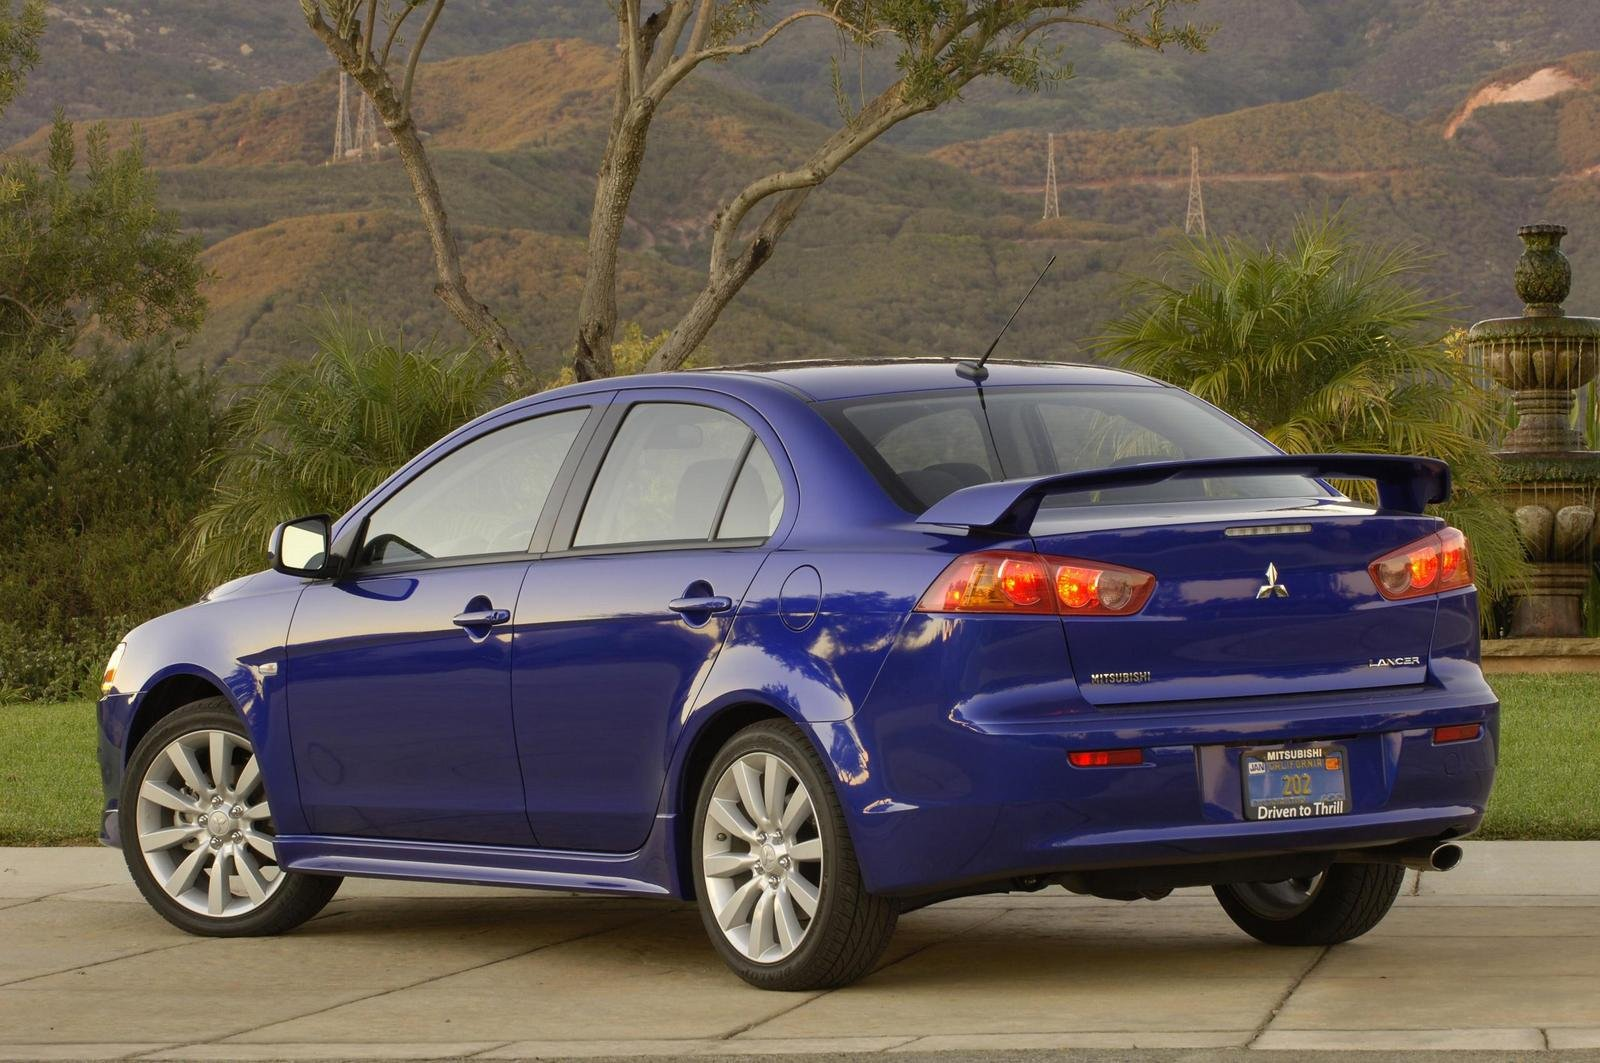 2008 mitsubishi lancer picture 142209 car review top speed. Black Bedroom Furniture Sets. Home Design Ideas